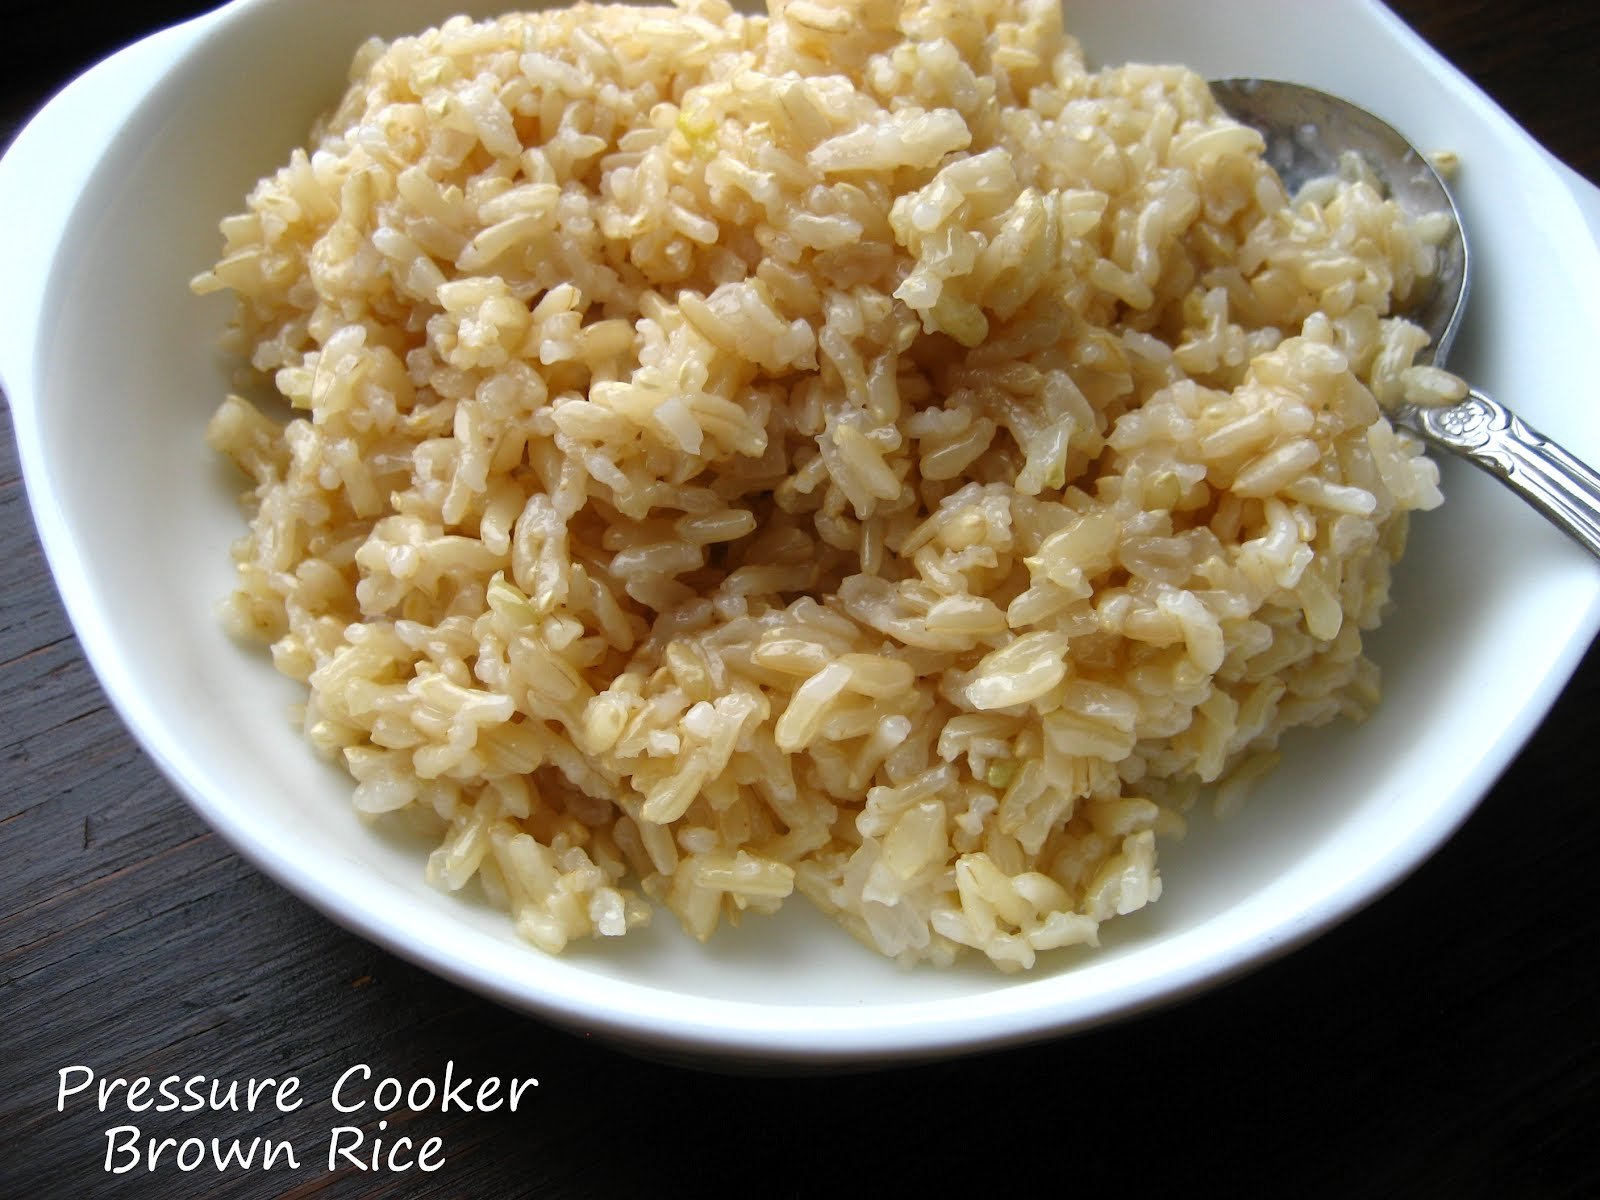 Home Cooking In Montana: Pressure Cooker Brown Rice